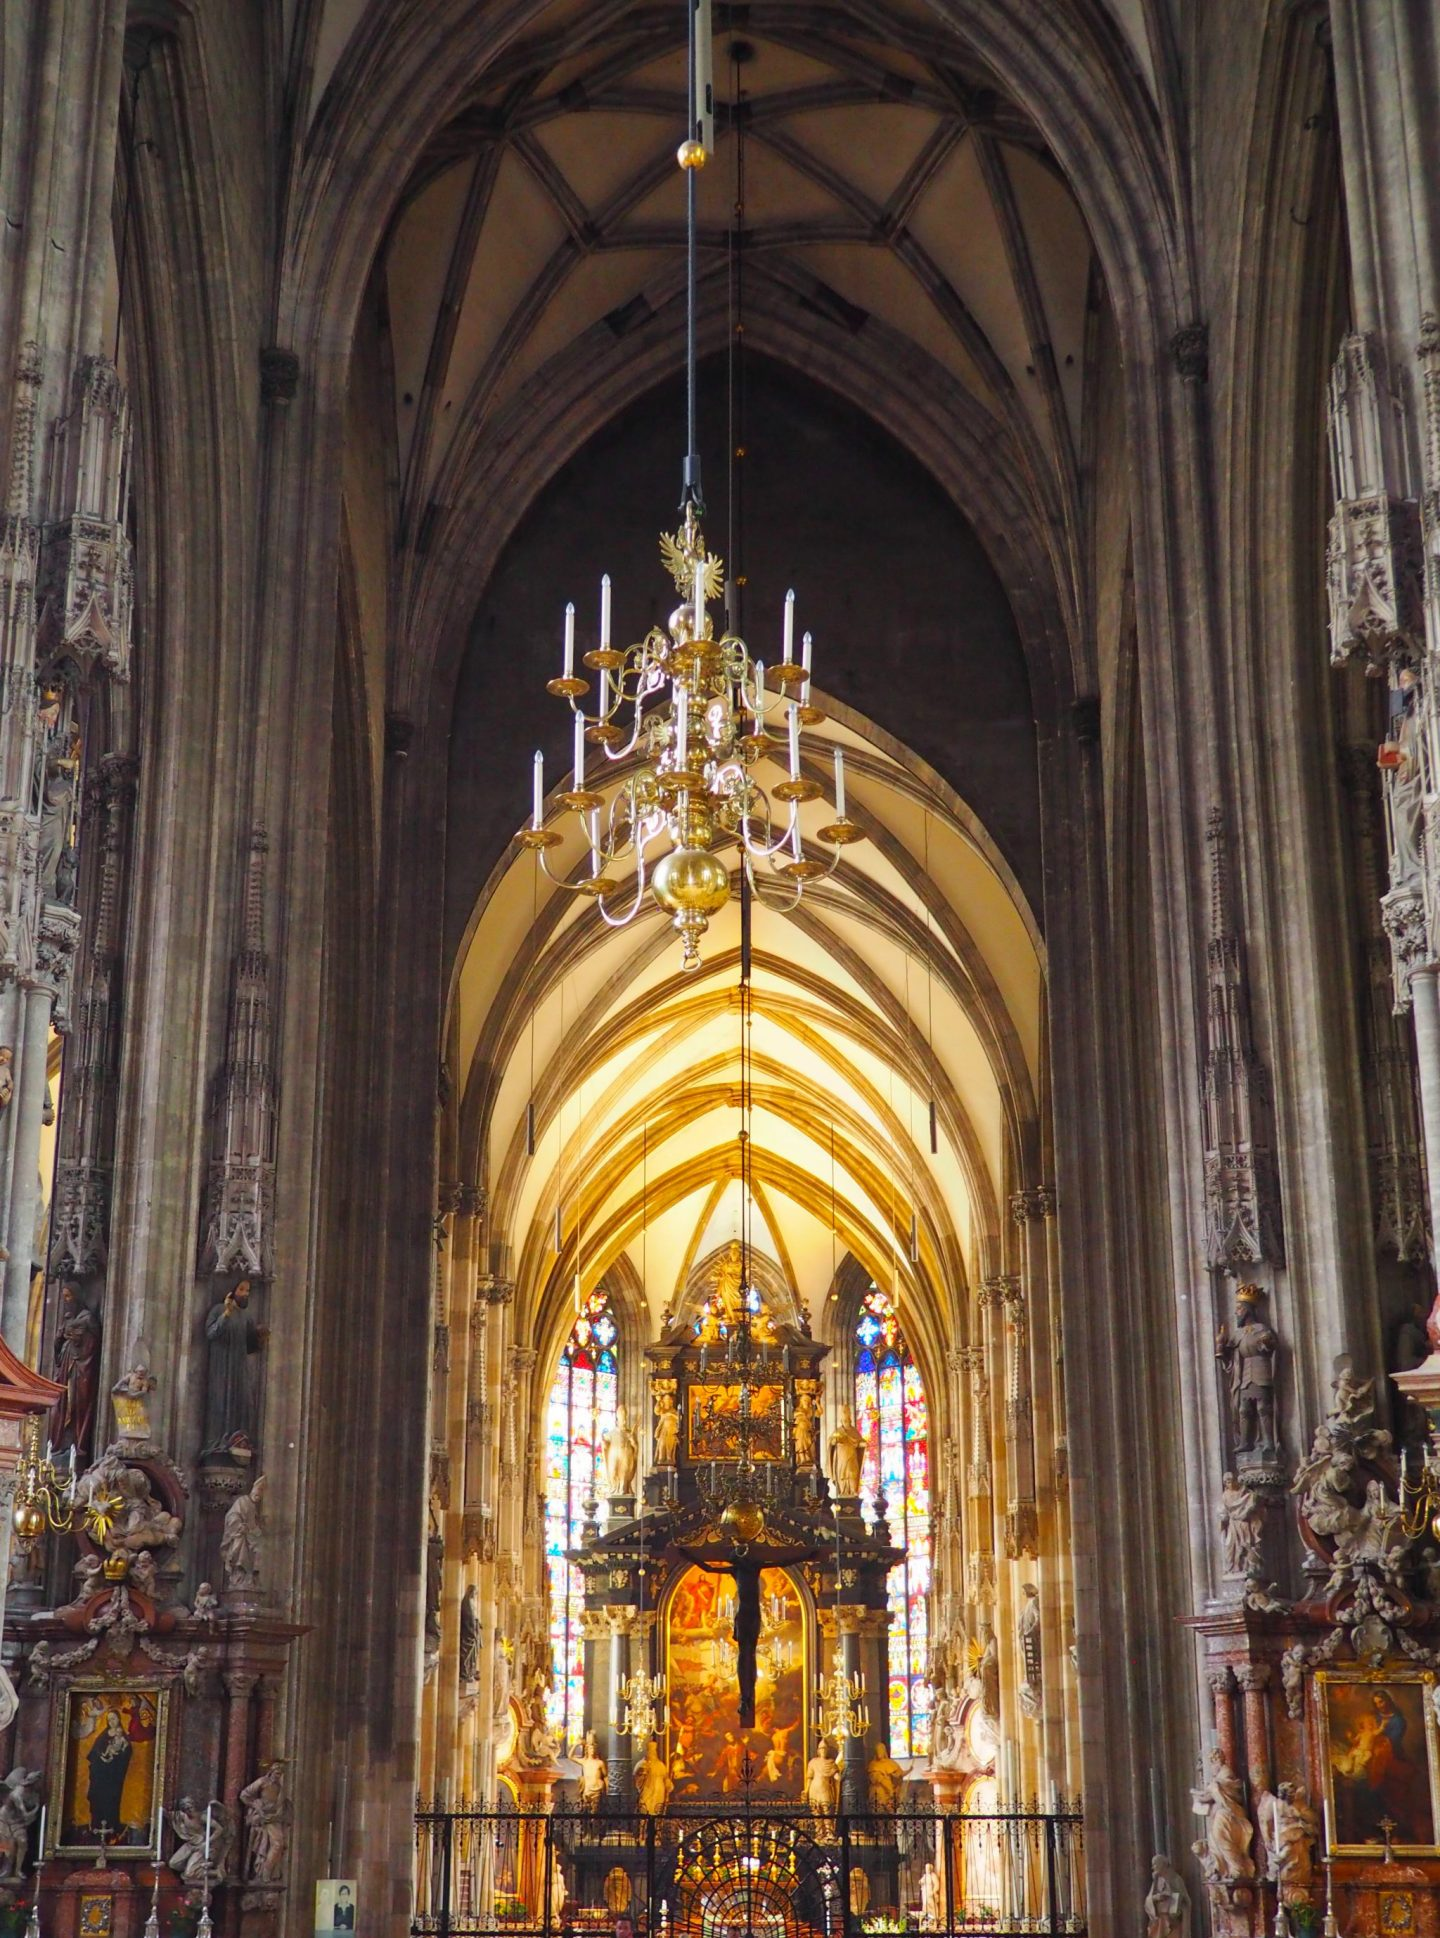 St. Stephen's Cathedral, Vienna